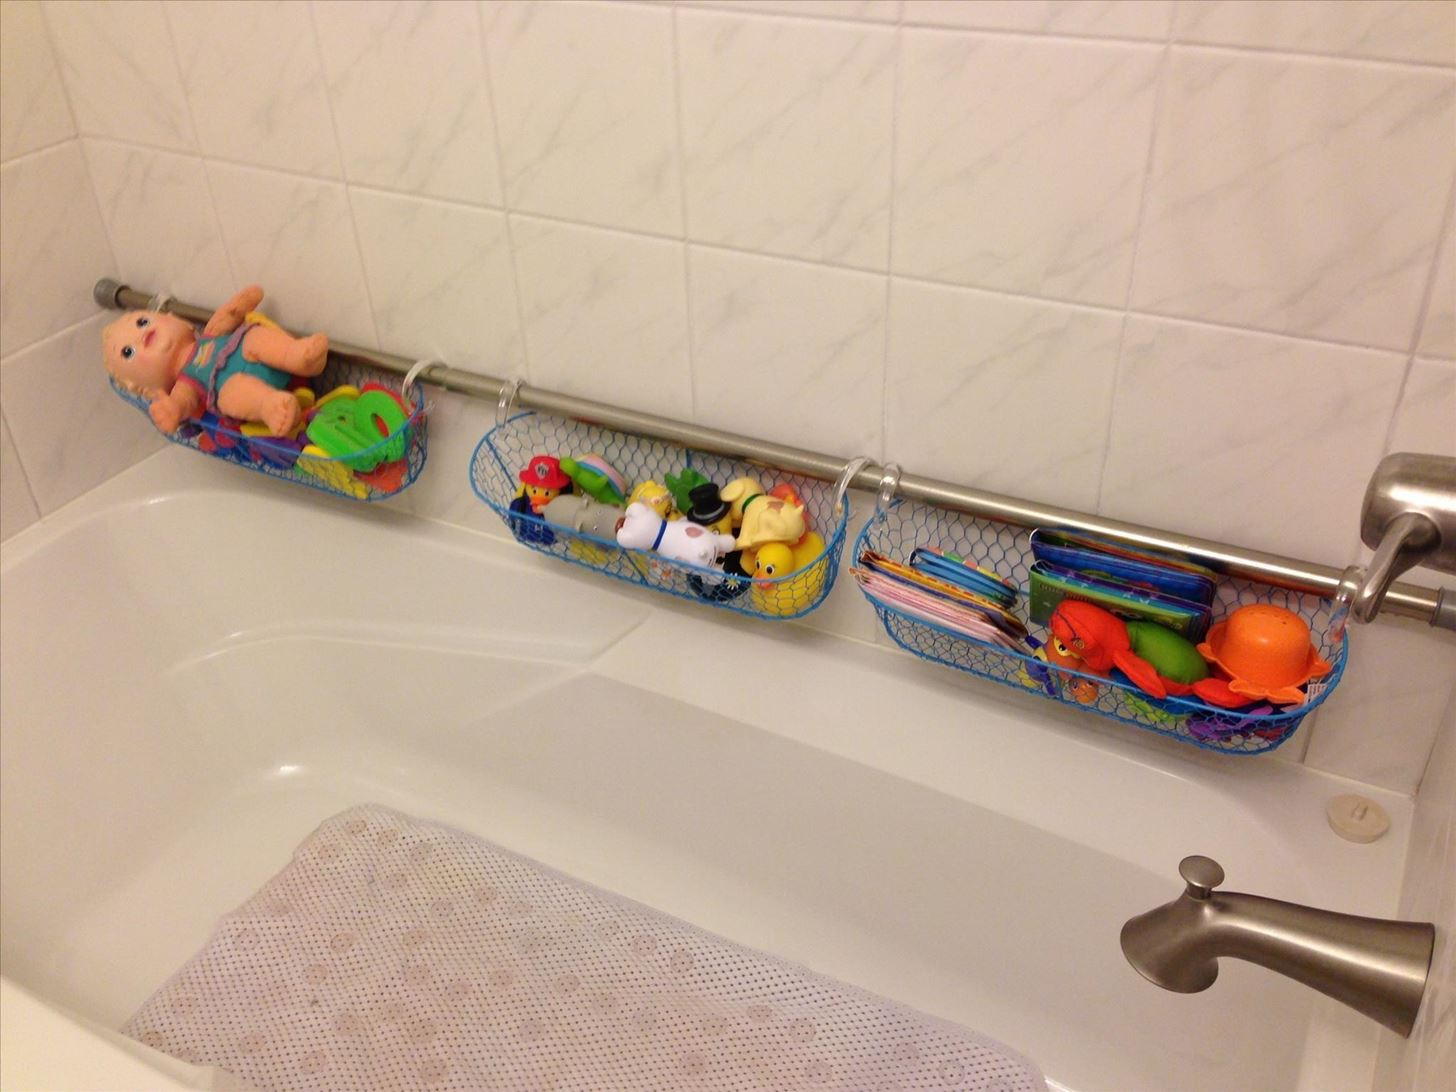 Use Extra Shower Curtain Rods To Increase Bathroom Storage U0026 More «  MacGyverisms :: WonderHowTo